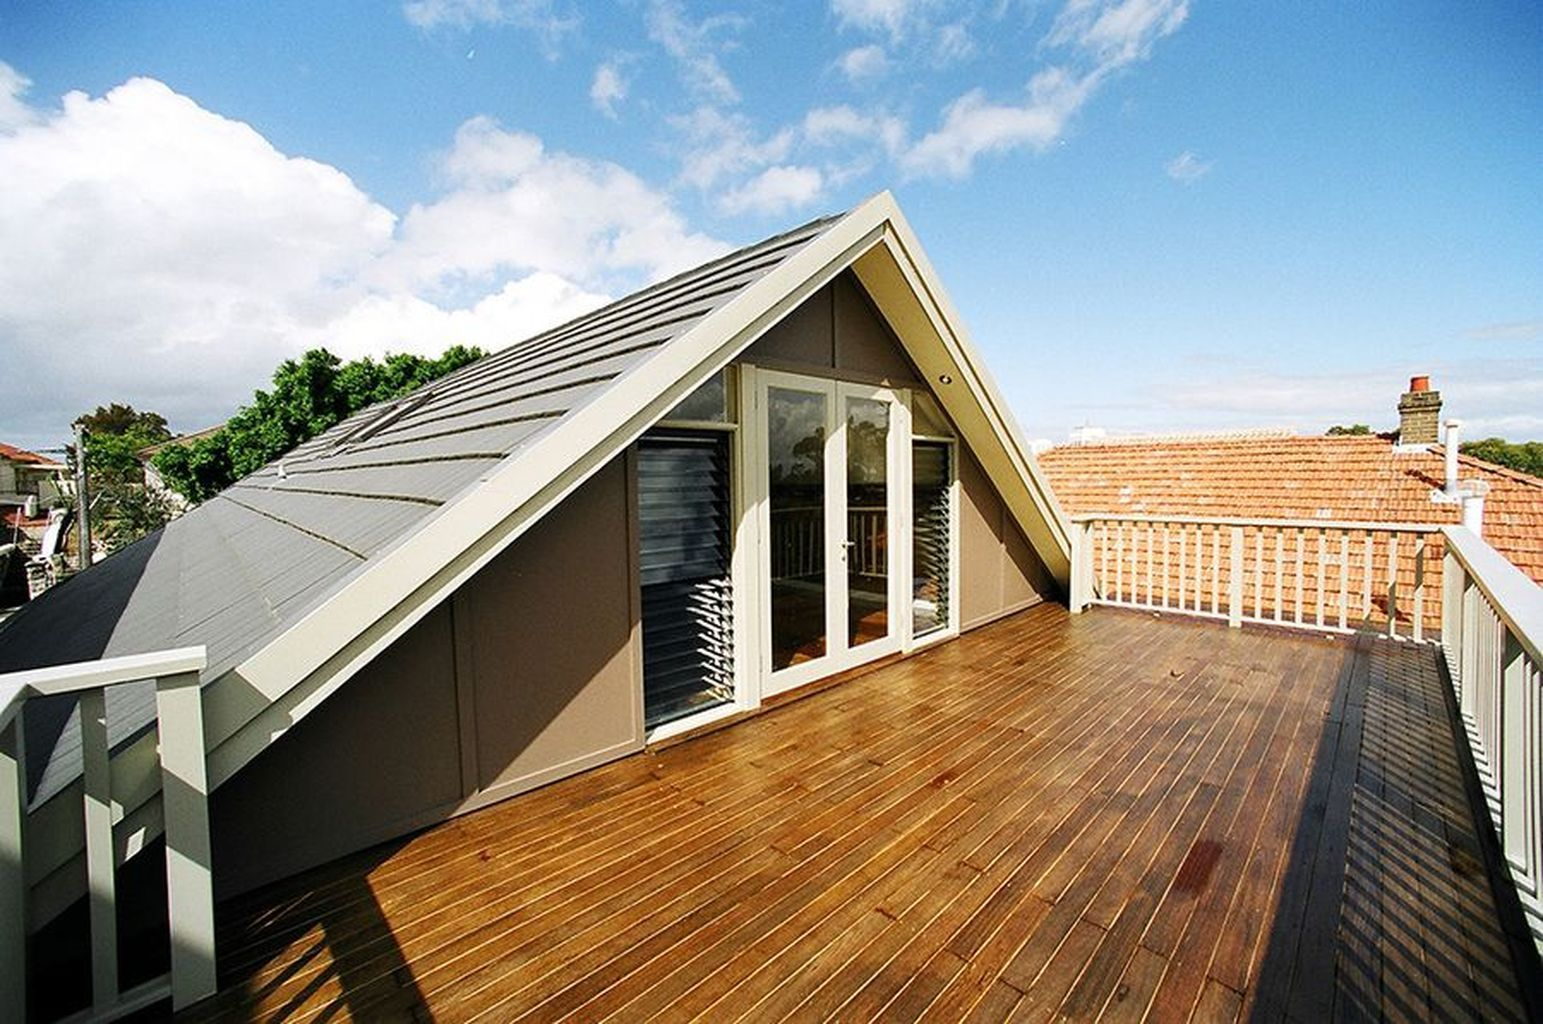 image - Roofing and Siding: Should I Replace Both at The Same Time?